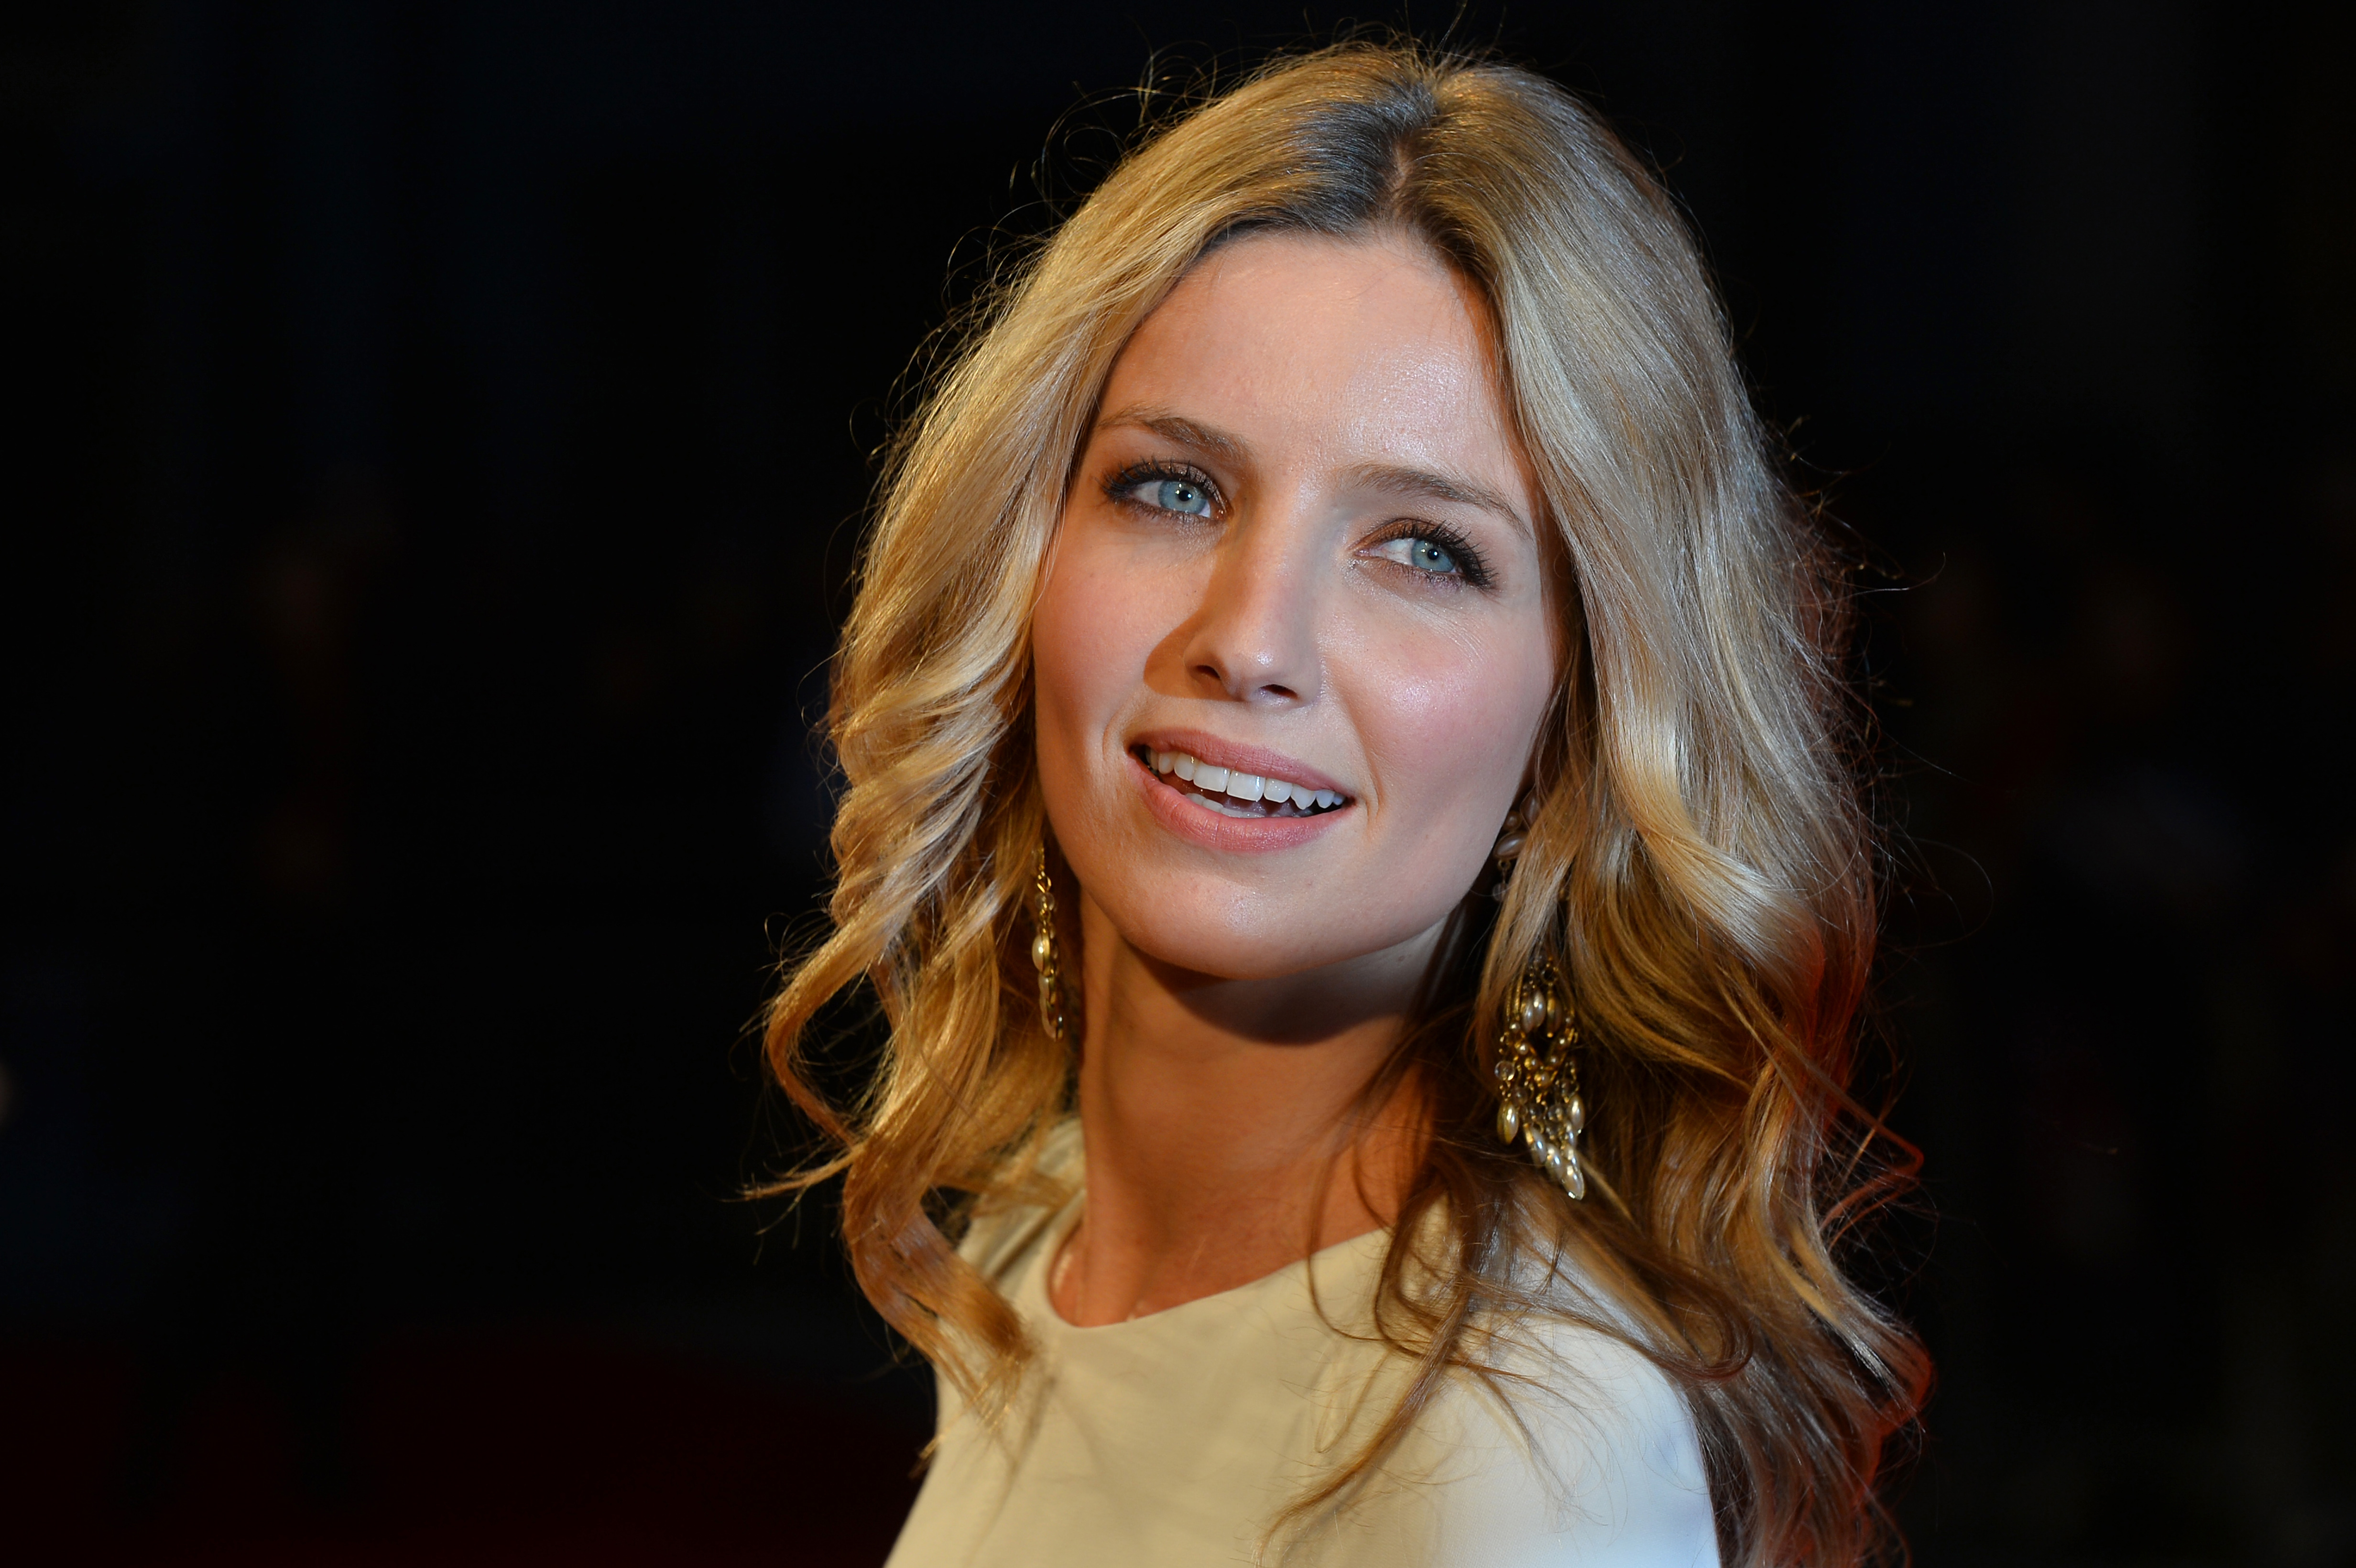 Who Is Annabelle Wallis The Annabelle Actress Is More Than Just A